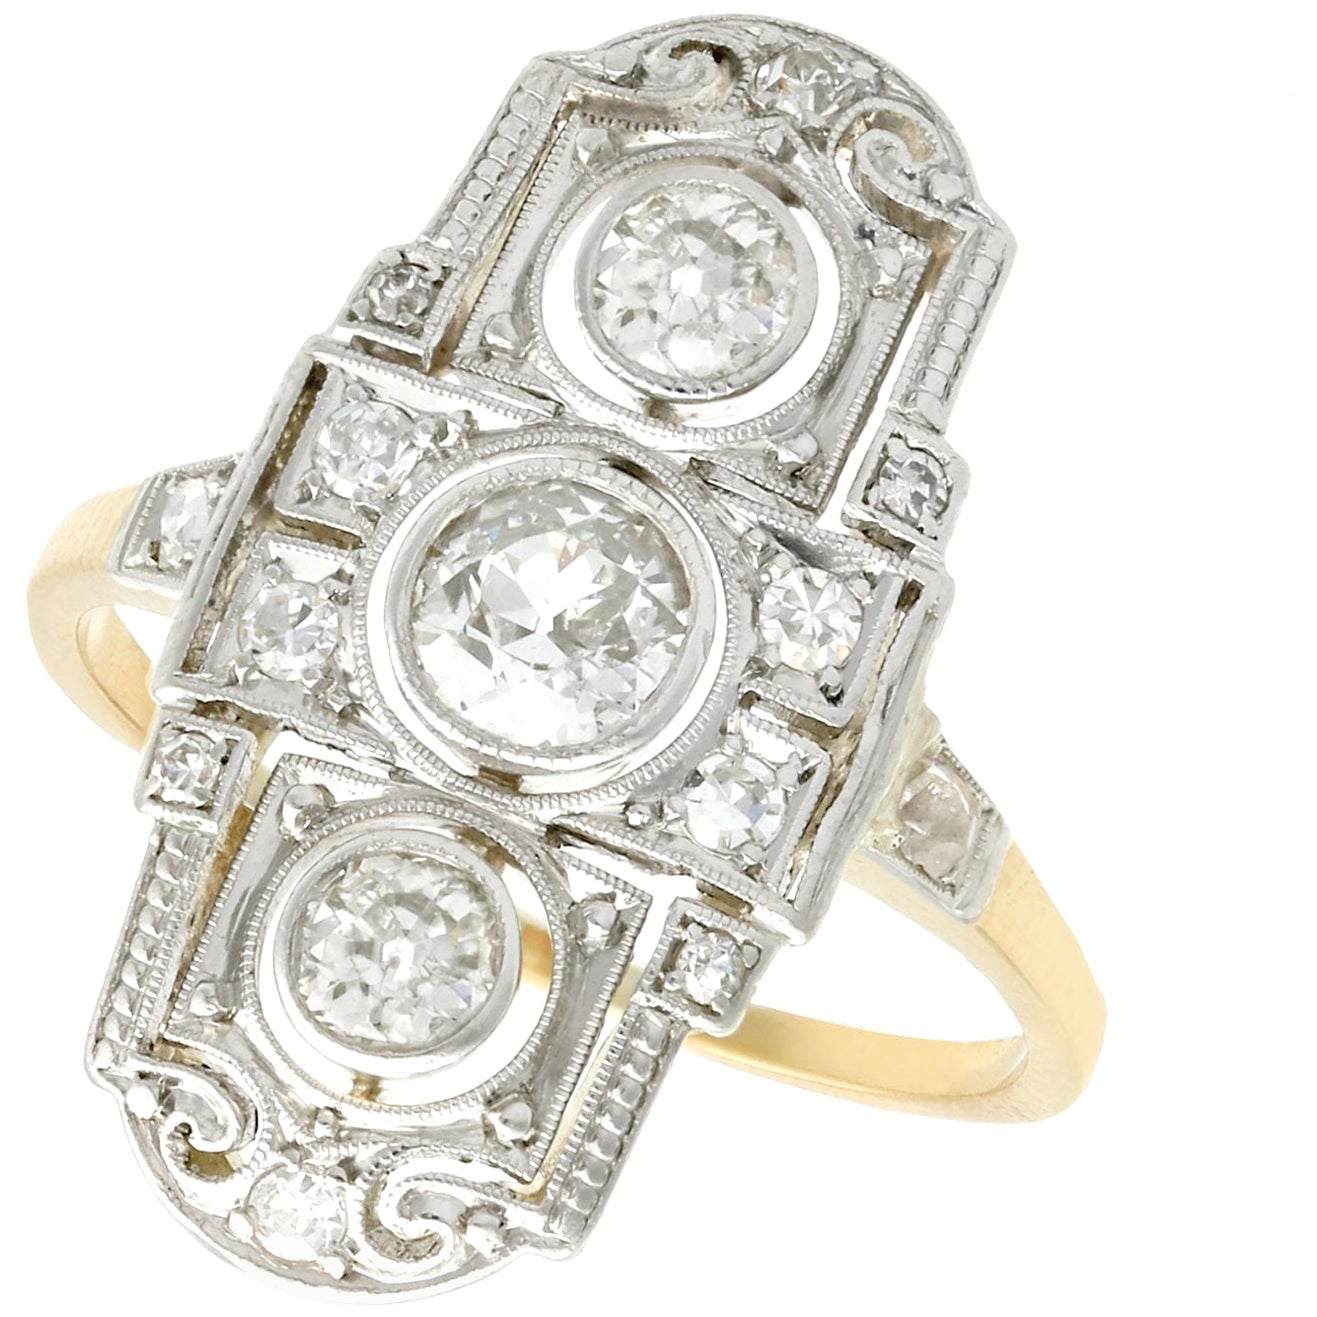 Antique 1920s Diamond and Yellow Gold Dress Ring